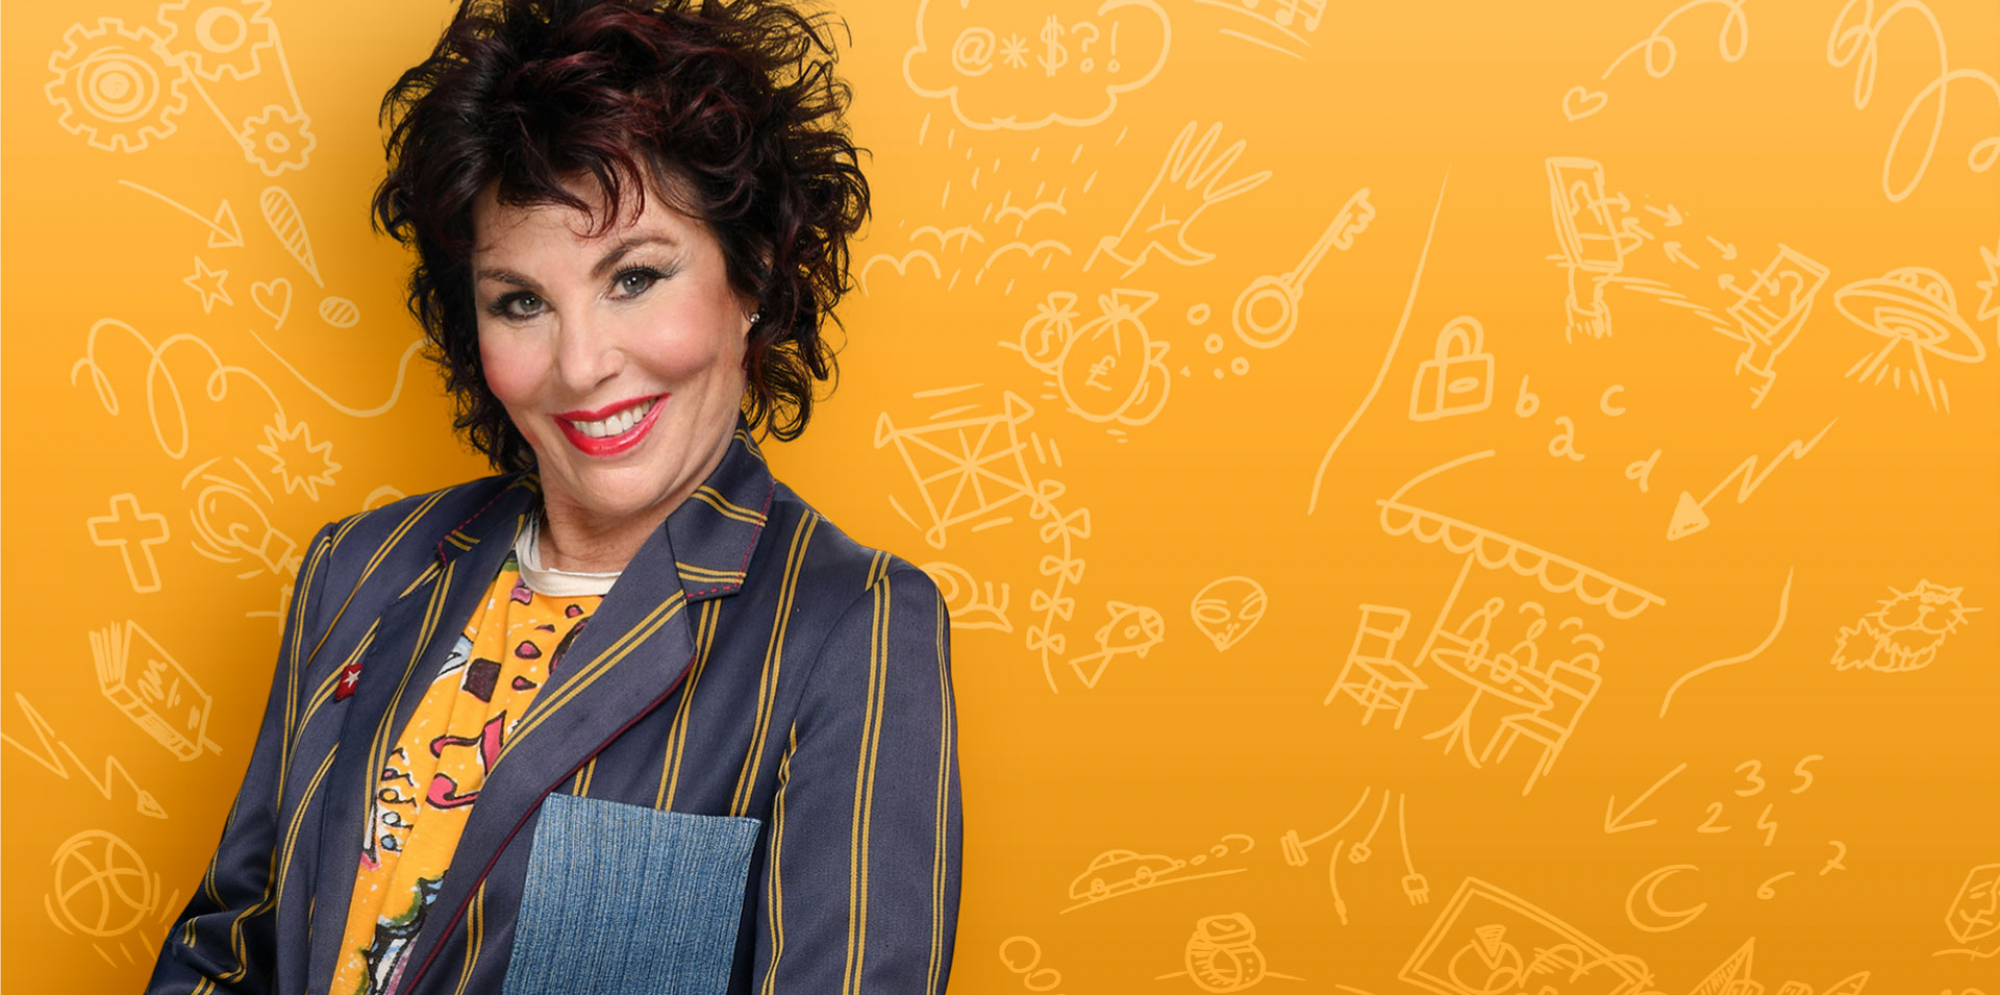 Ruby Wax smiling on an orange background